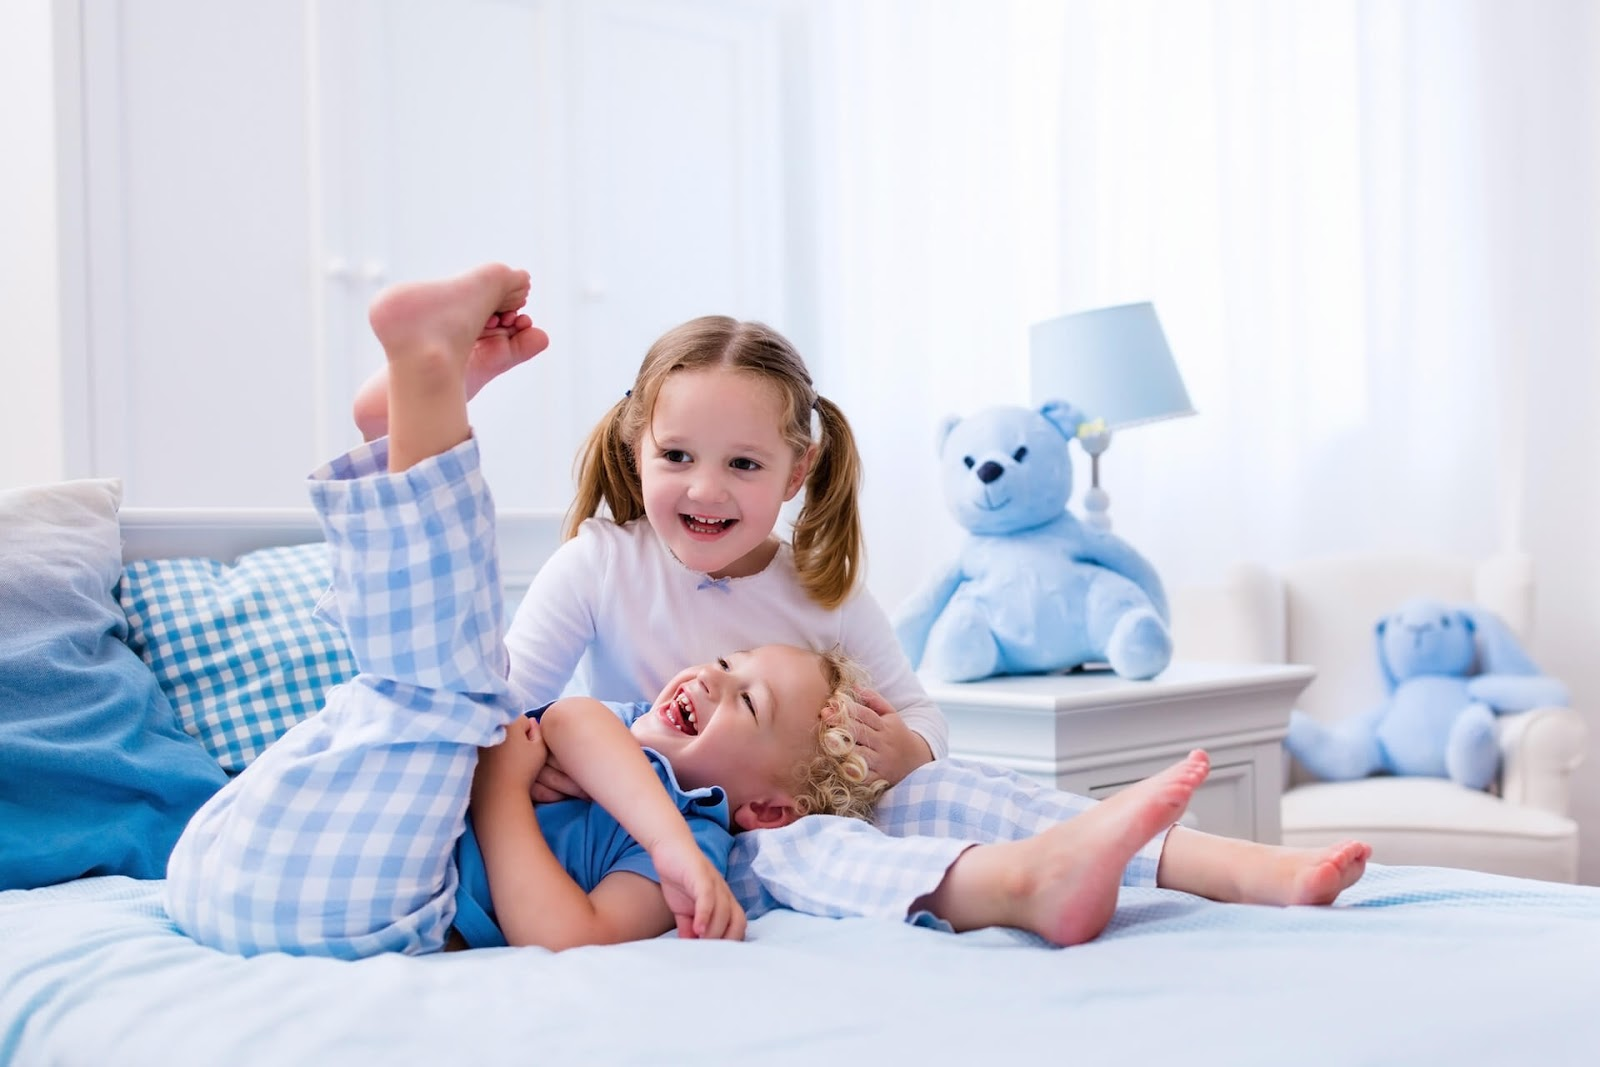 Children playing in bed in their jammies